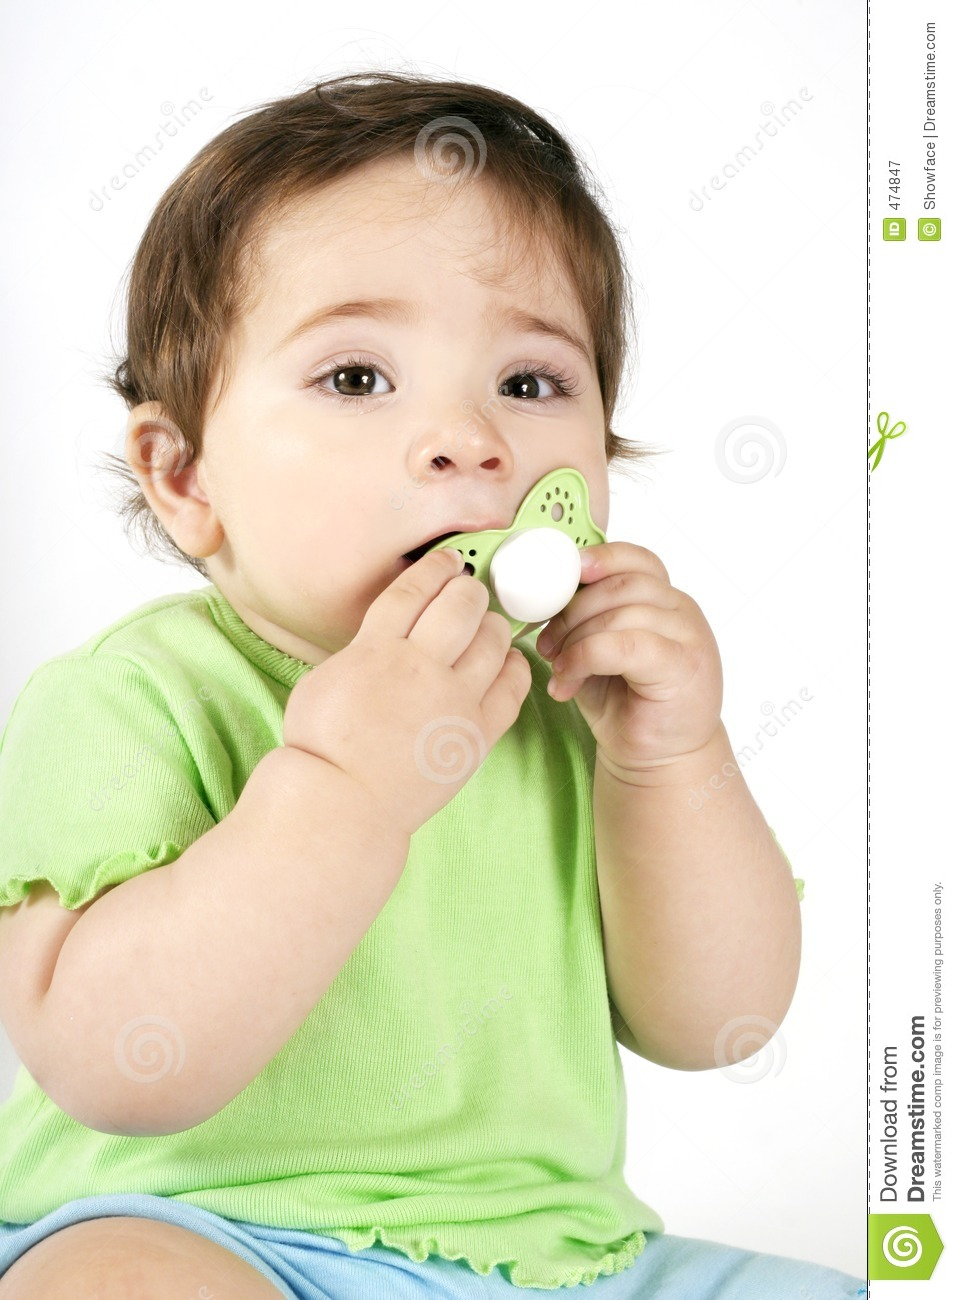 Baby putting a dummy into mouth royalty free stock photography image